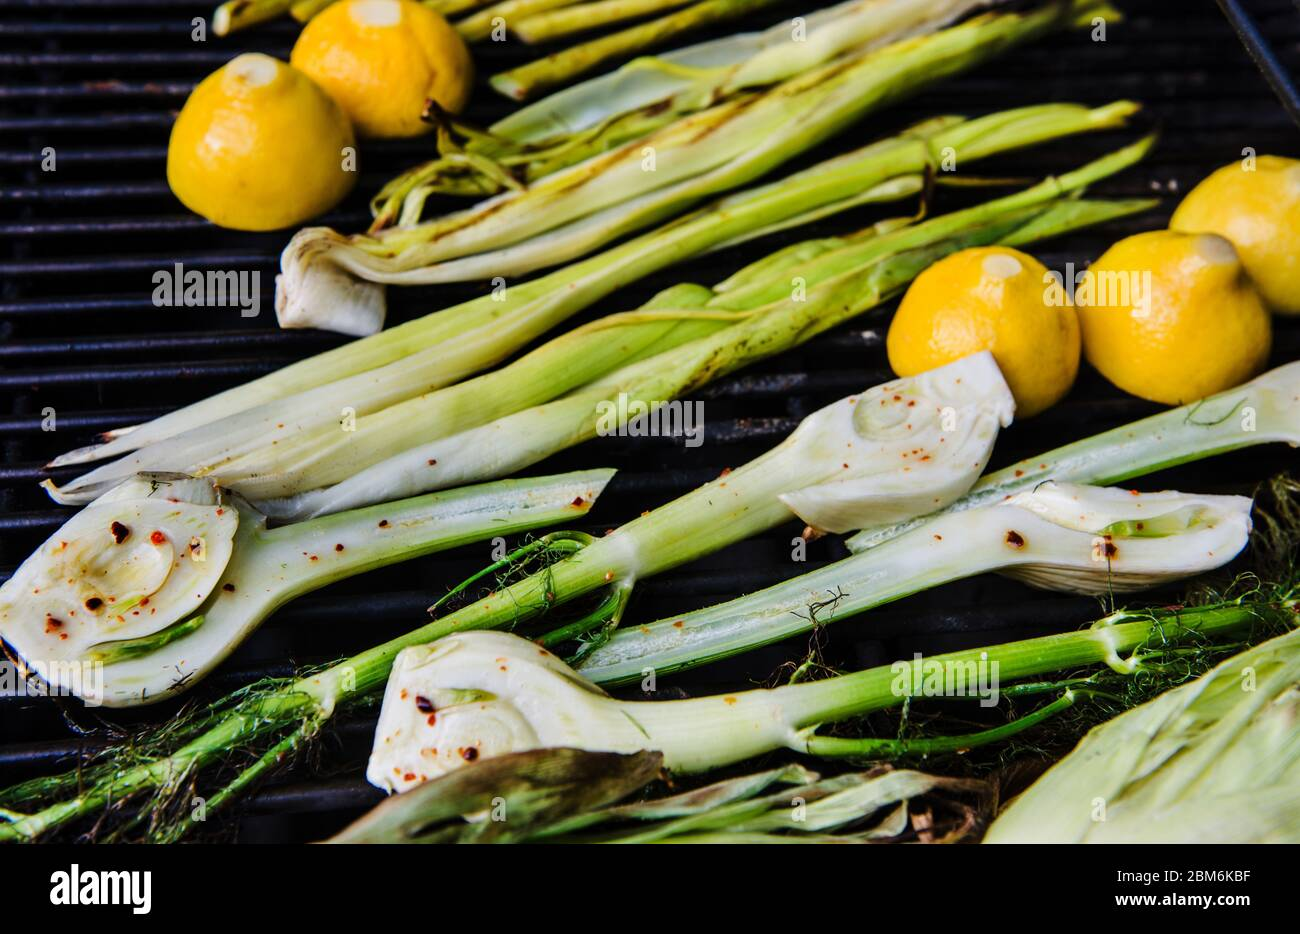 Fresh grilled summer produce of fennel and lemon Stock Photo